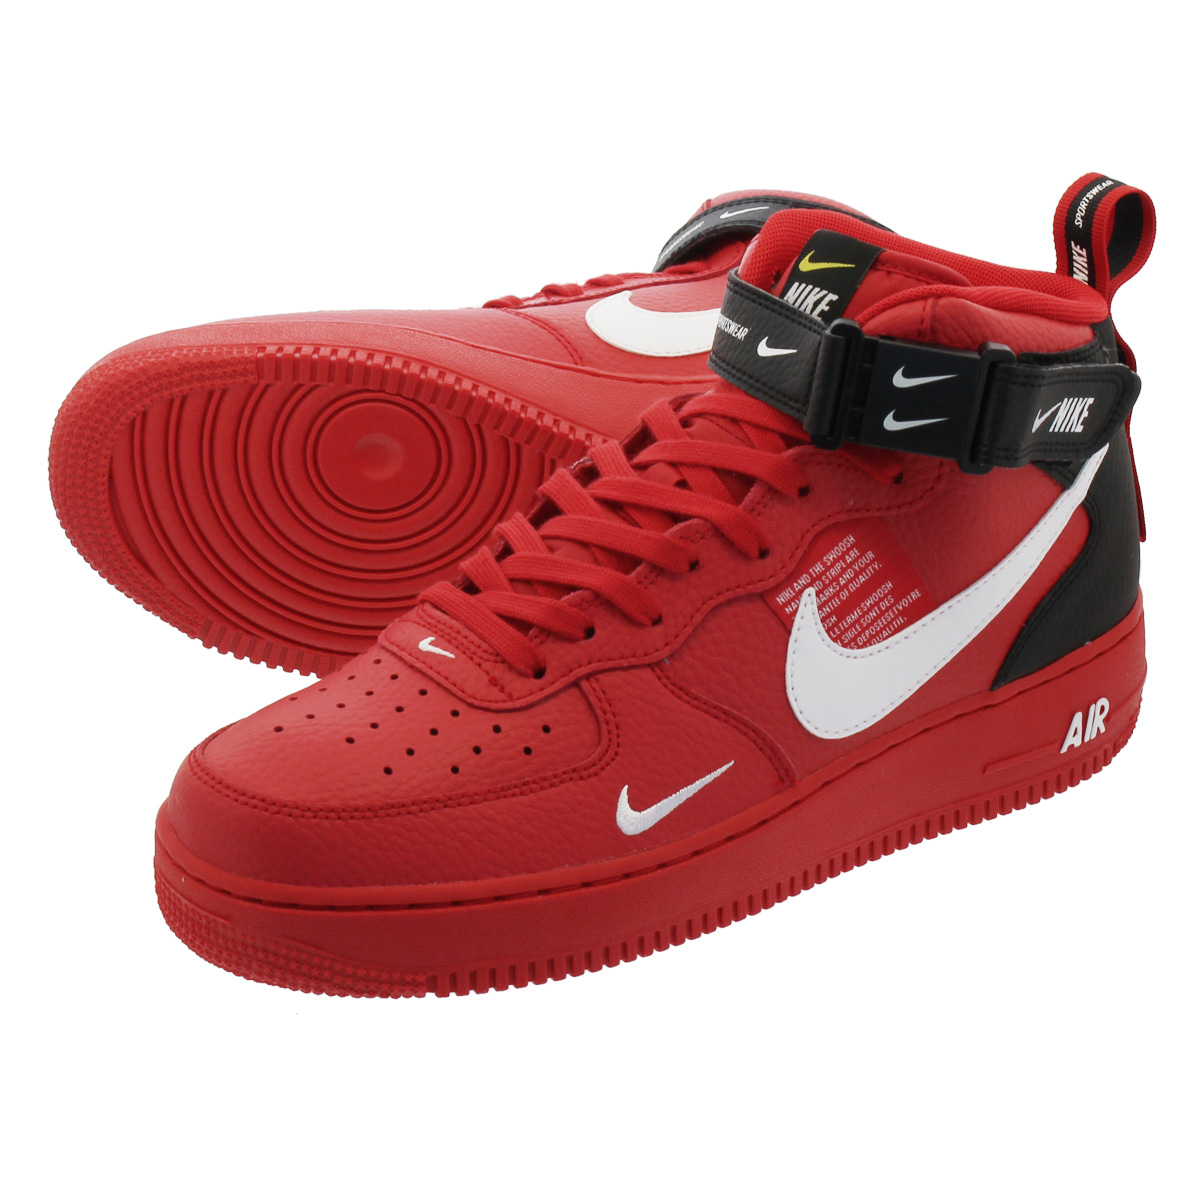 f310915e2e8708 LOWTEX PLUS  NIKE AIR FORCE 1 MID  07 LV8 UTILITY Nike air force 1 mid  07  LV8 utility RED 804